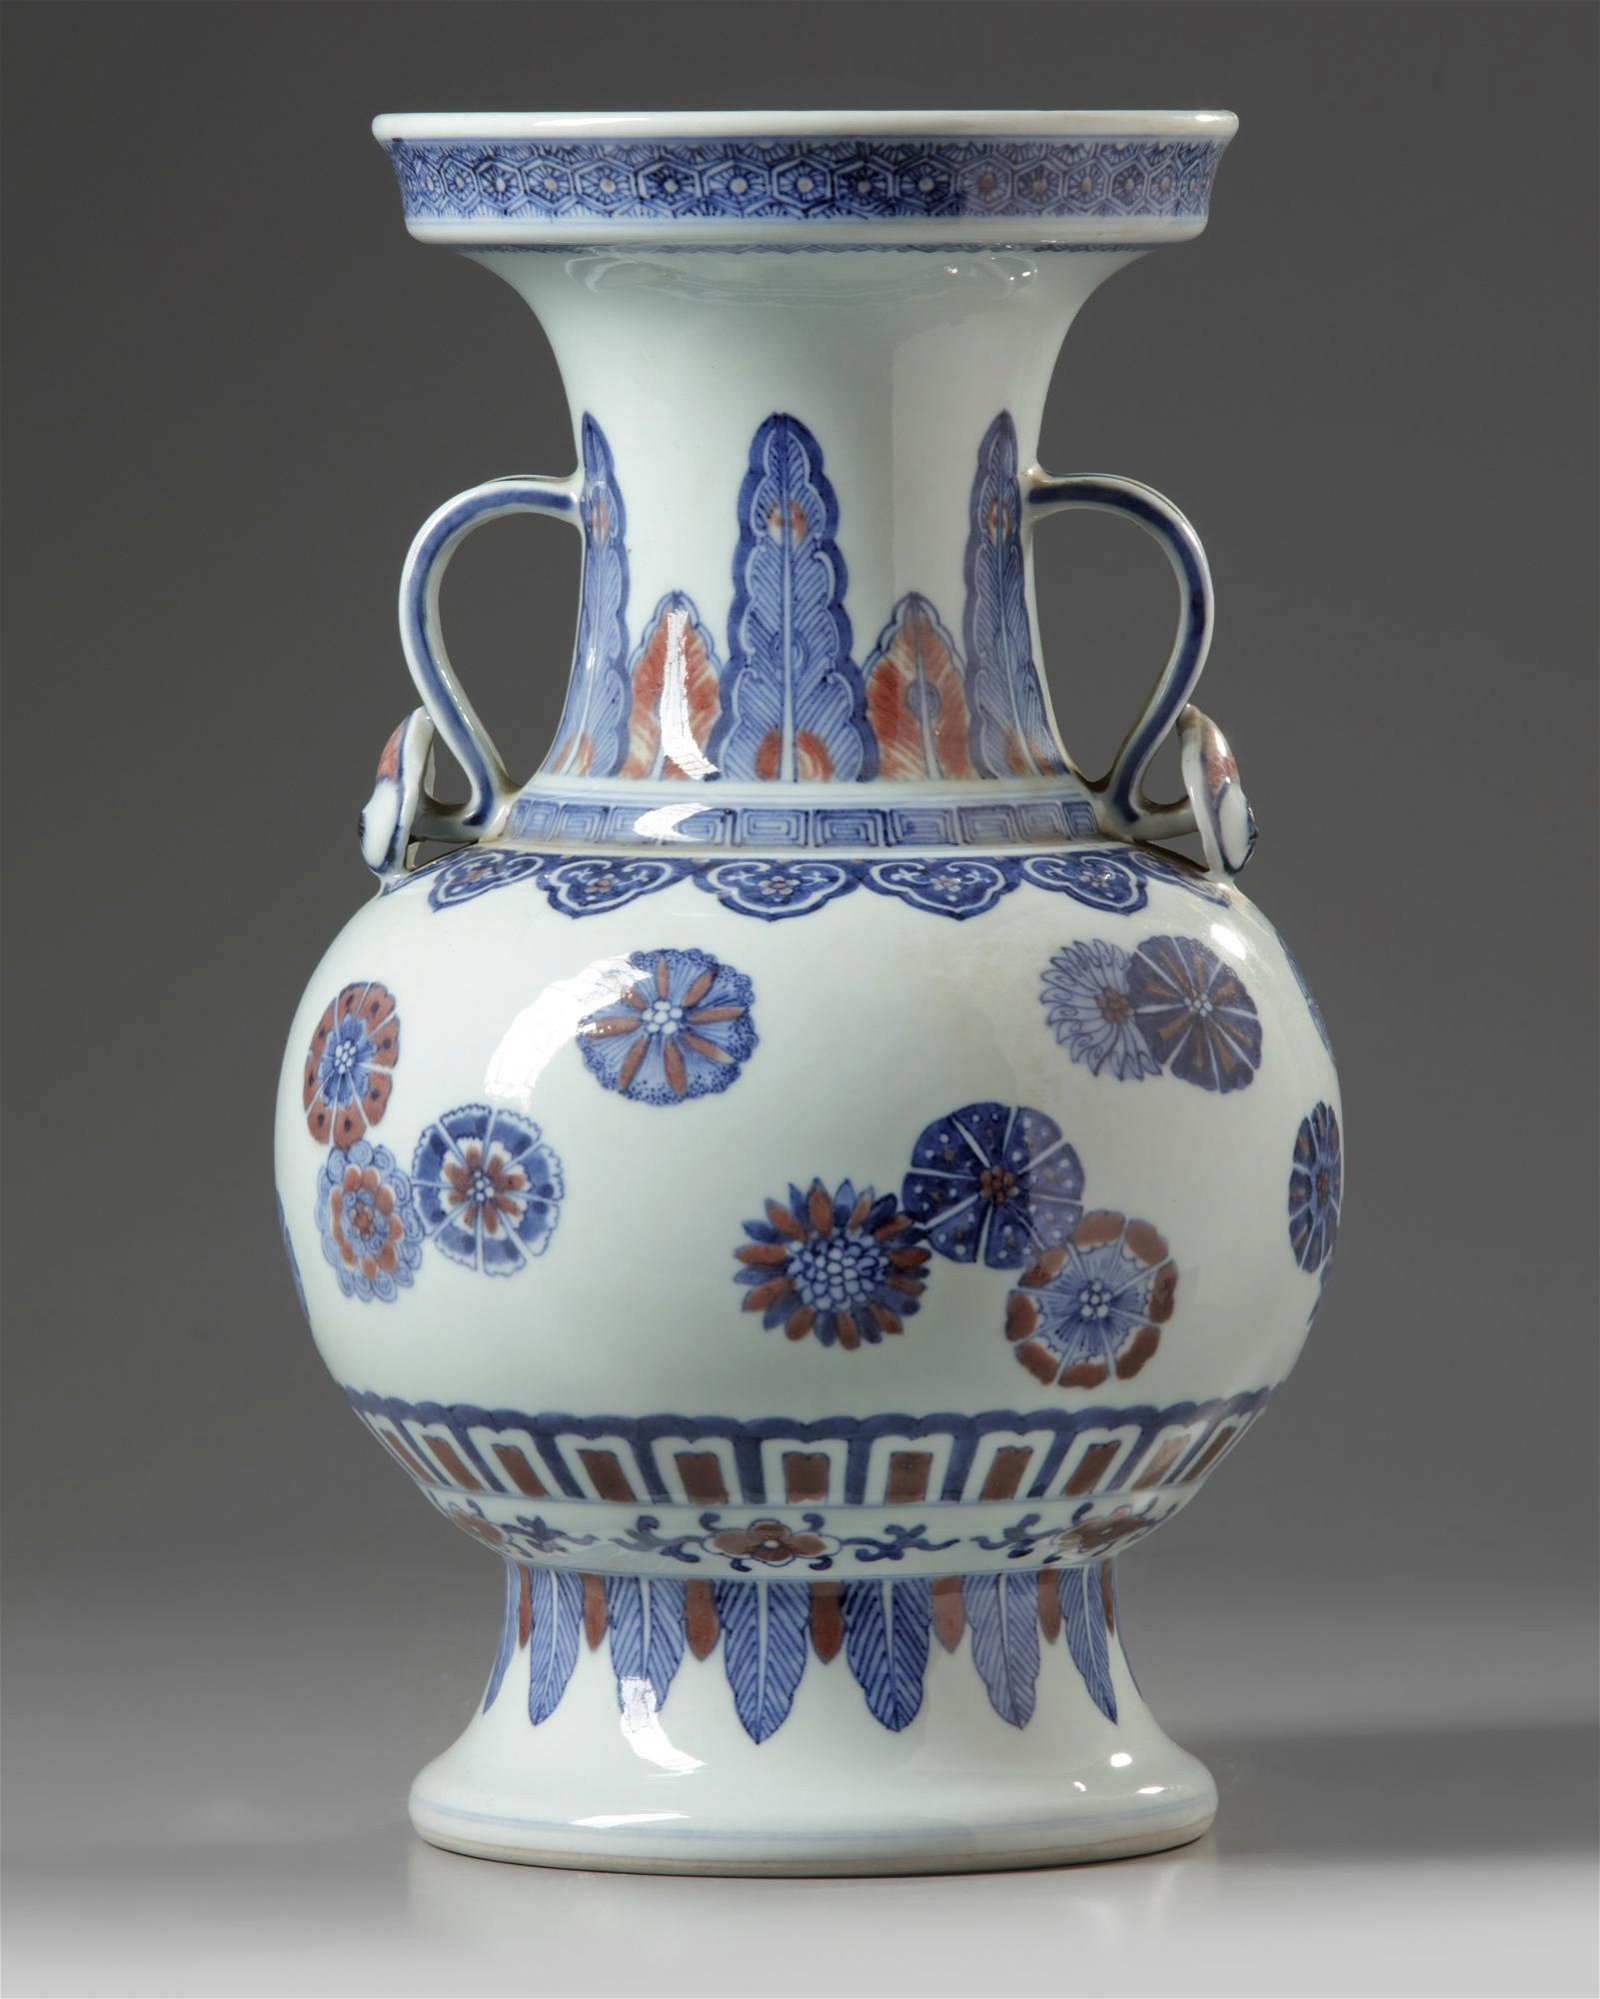 A CHINESE PORCELAIN VASE, CHINA, QING DYNASTY